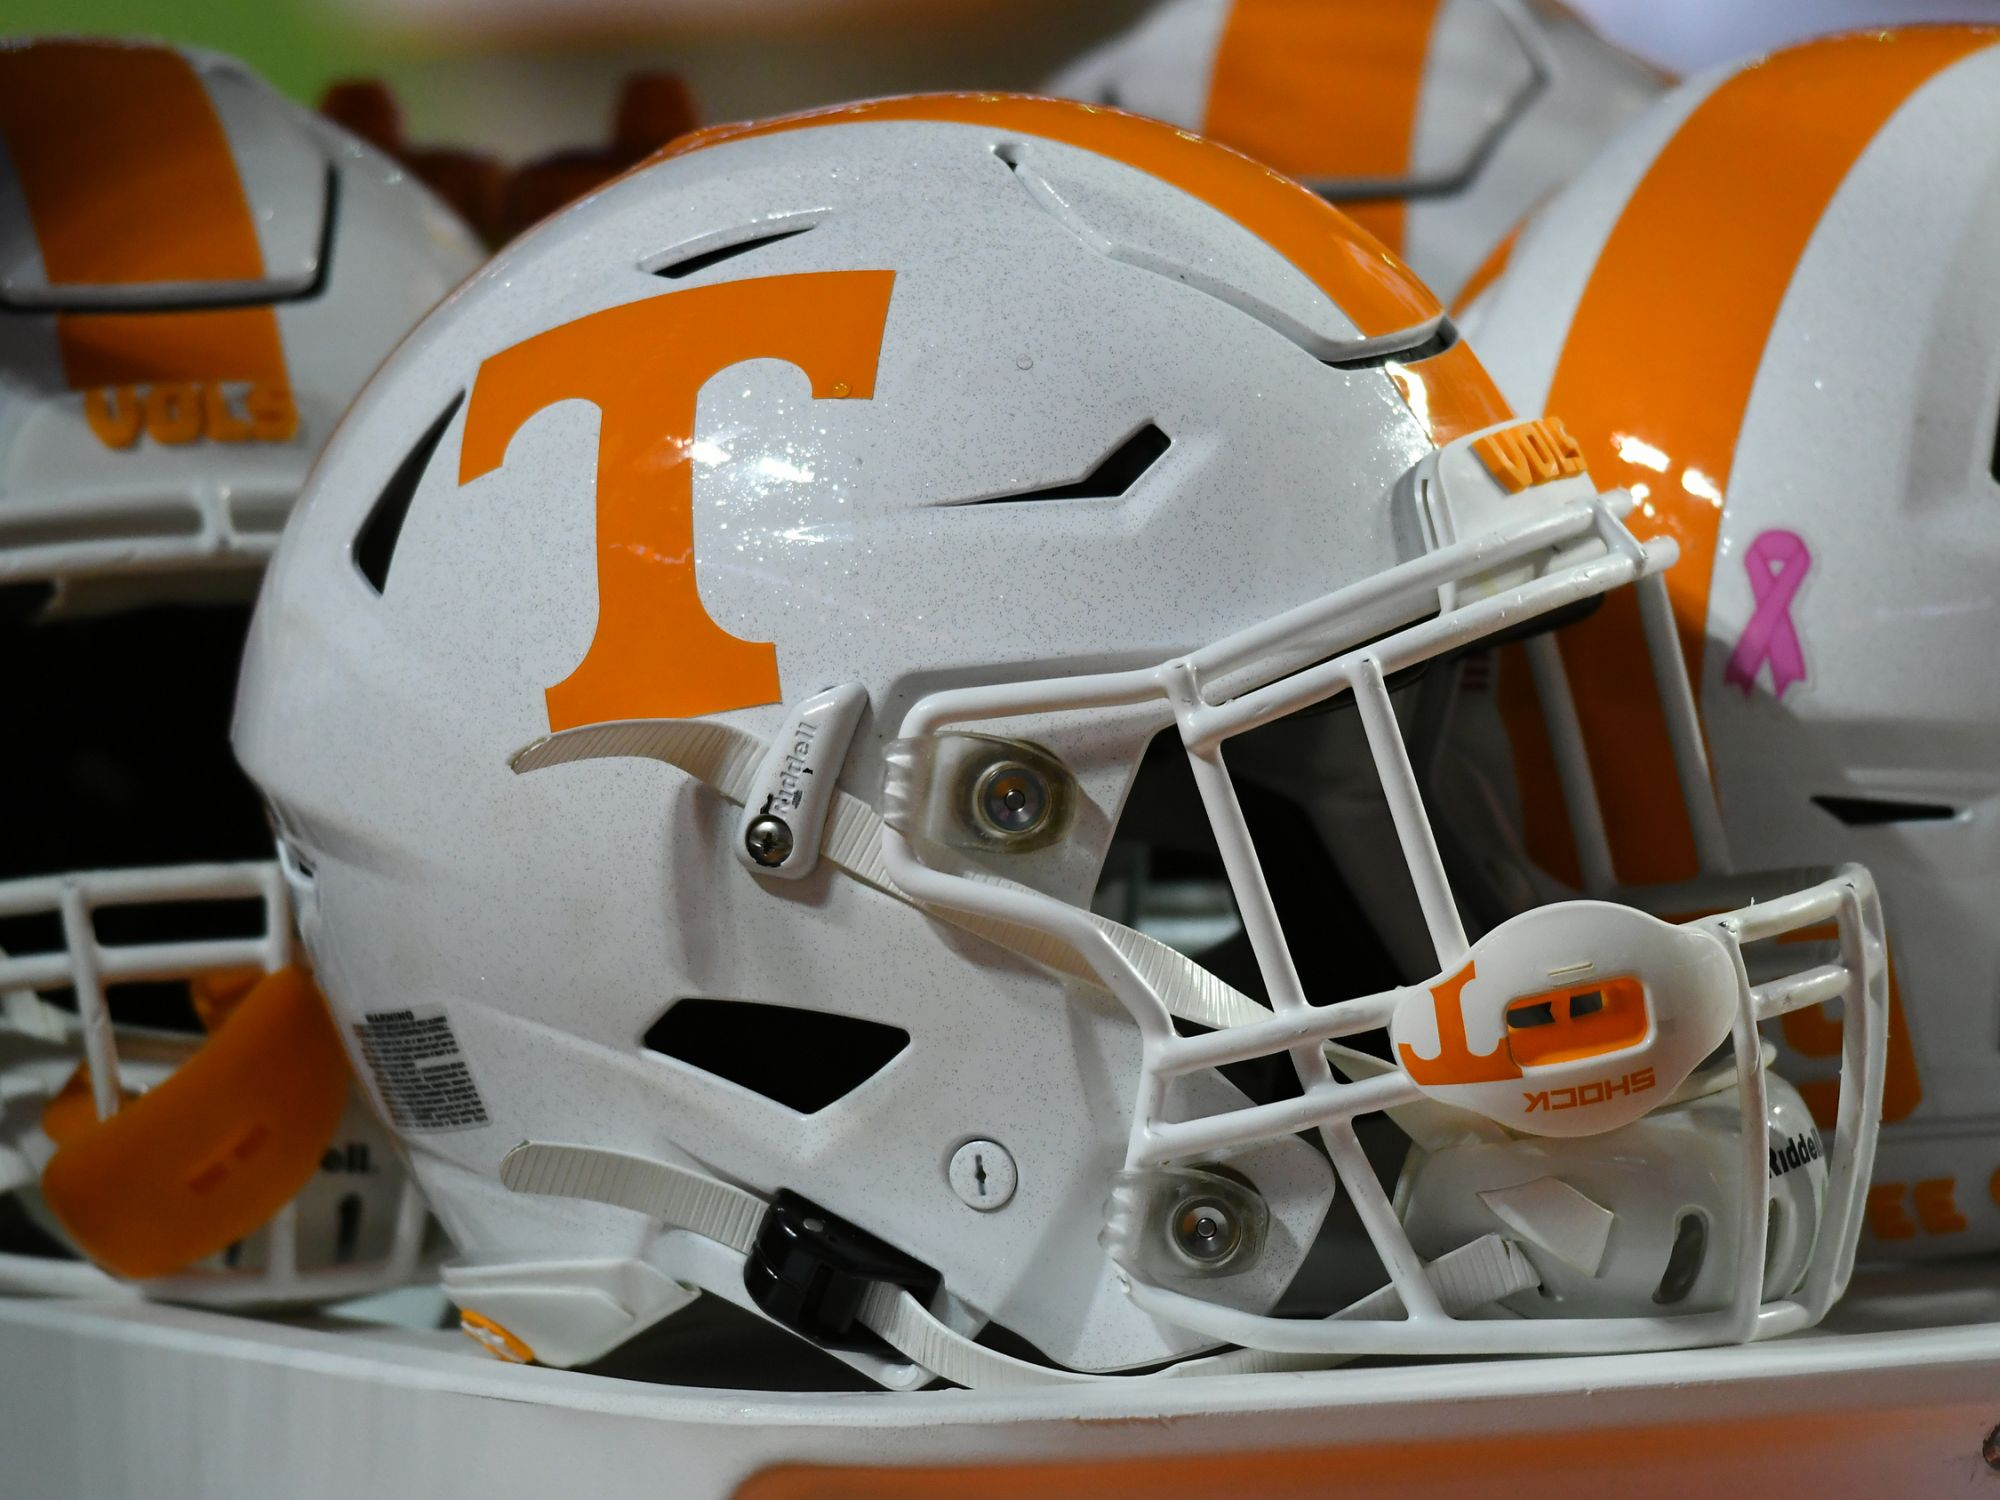 after-coaching-change,-tennessee-finally-releases-top-2021-signee-from-his-letter-of-intent